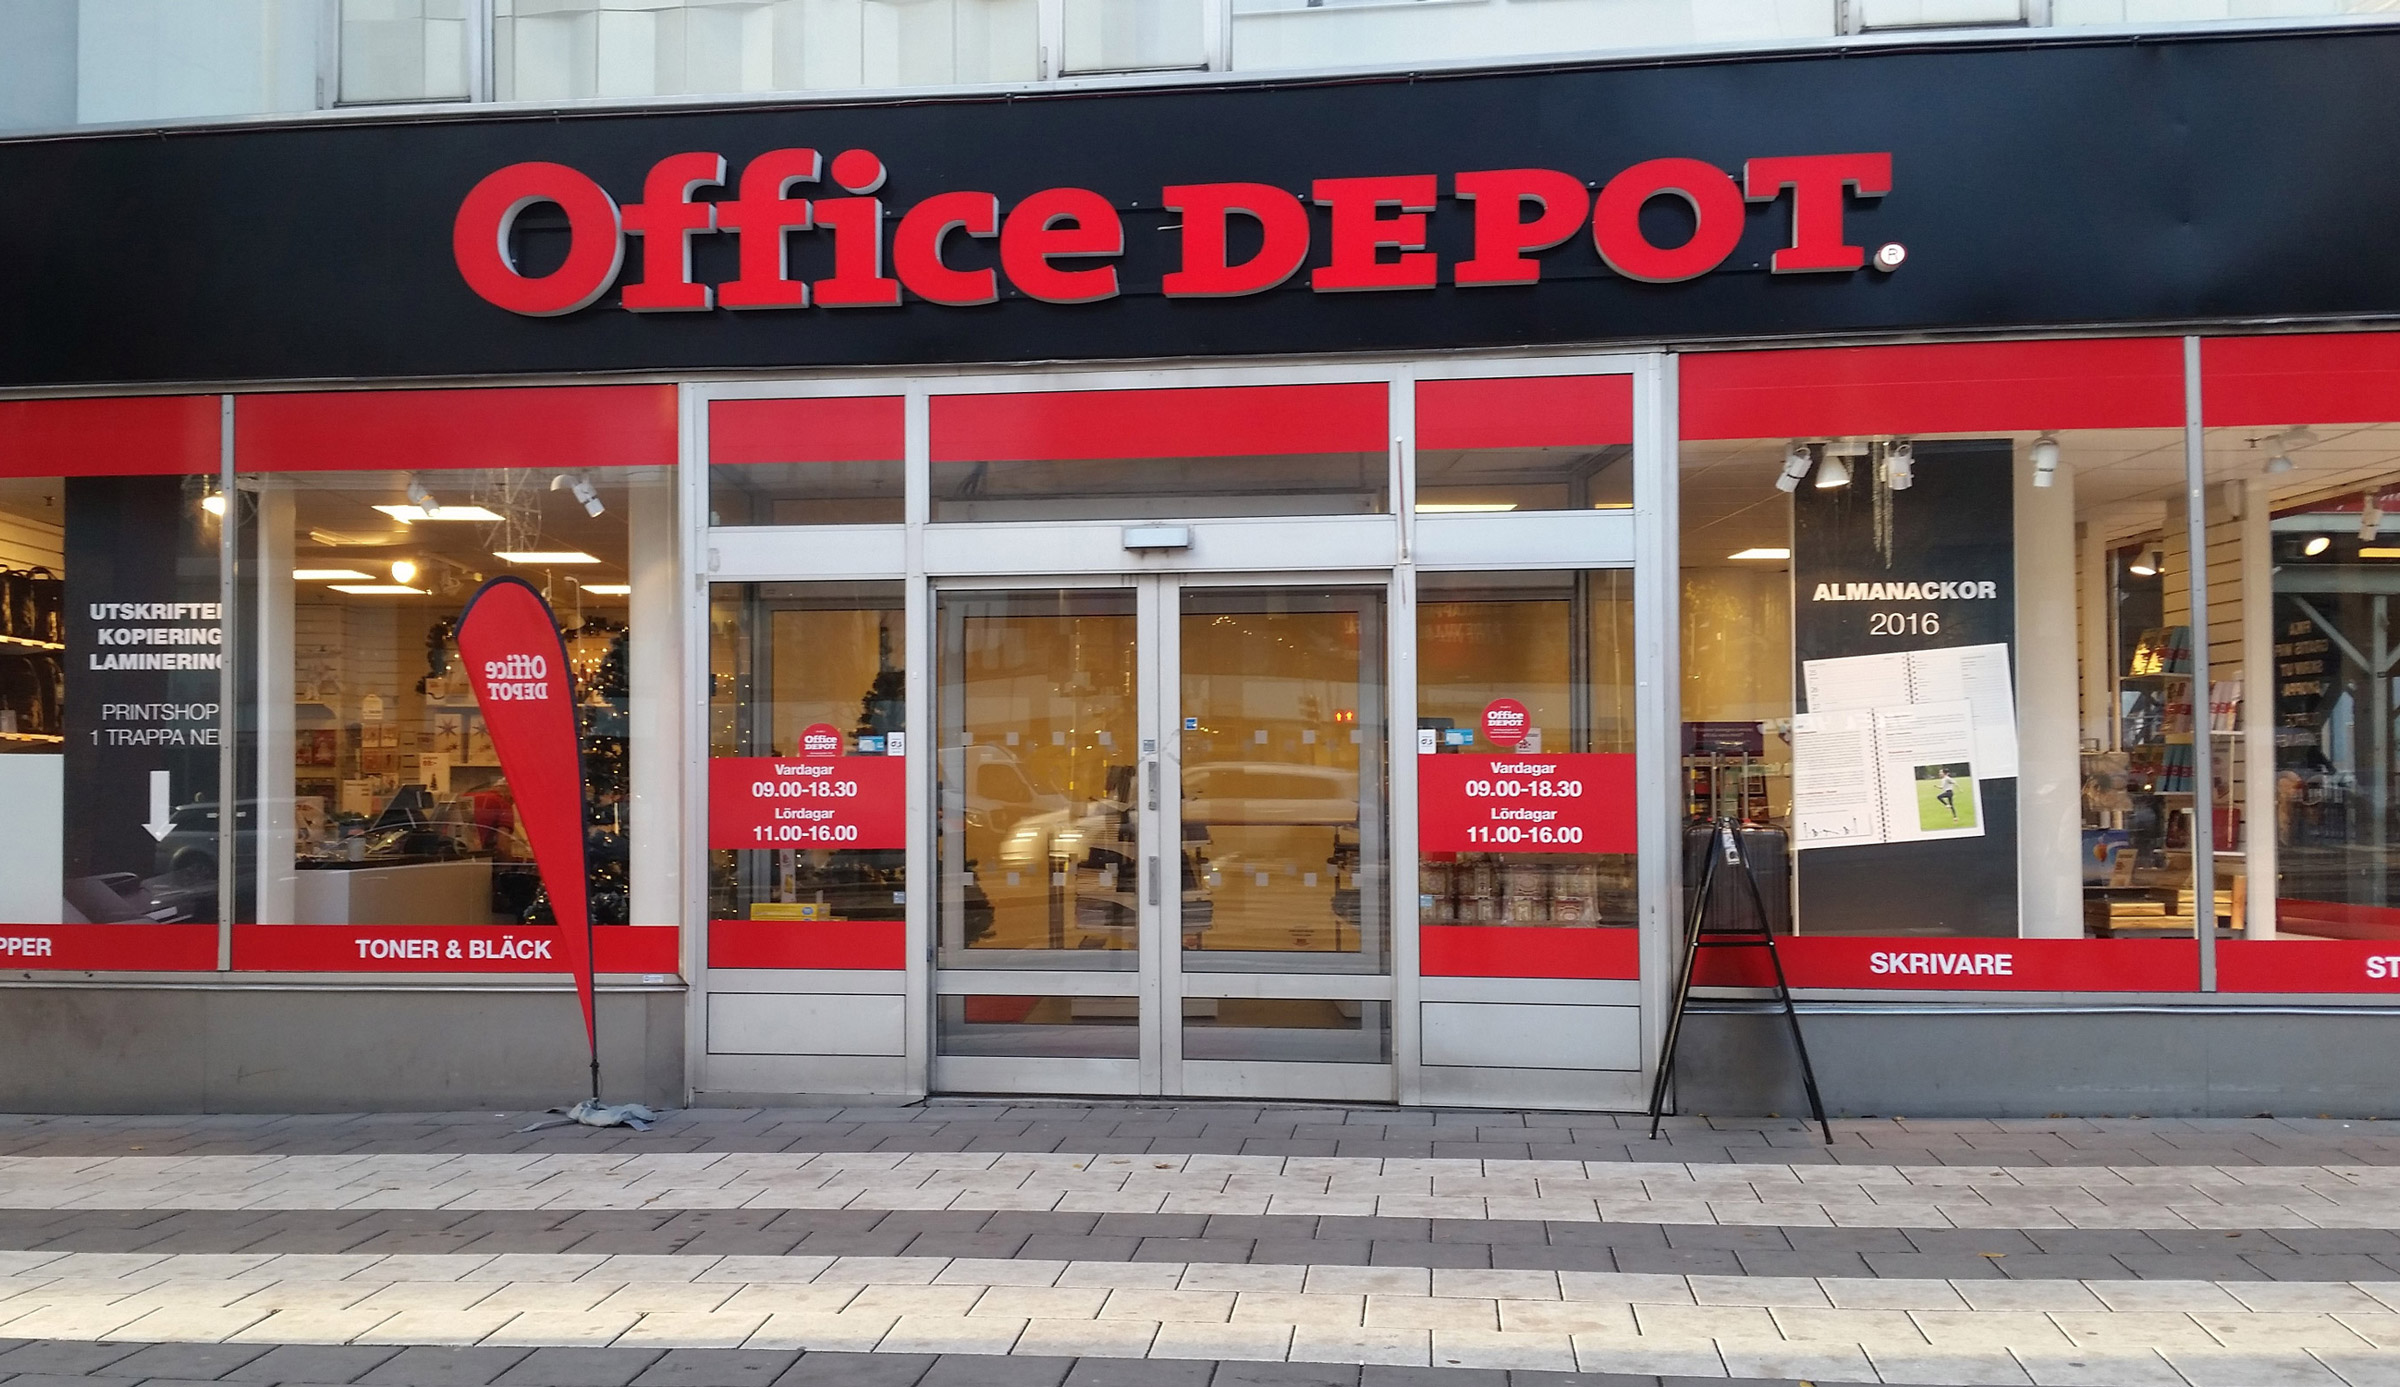 Office depot locations office depot locations office depot store locator office depot - Office depot store near me ...